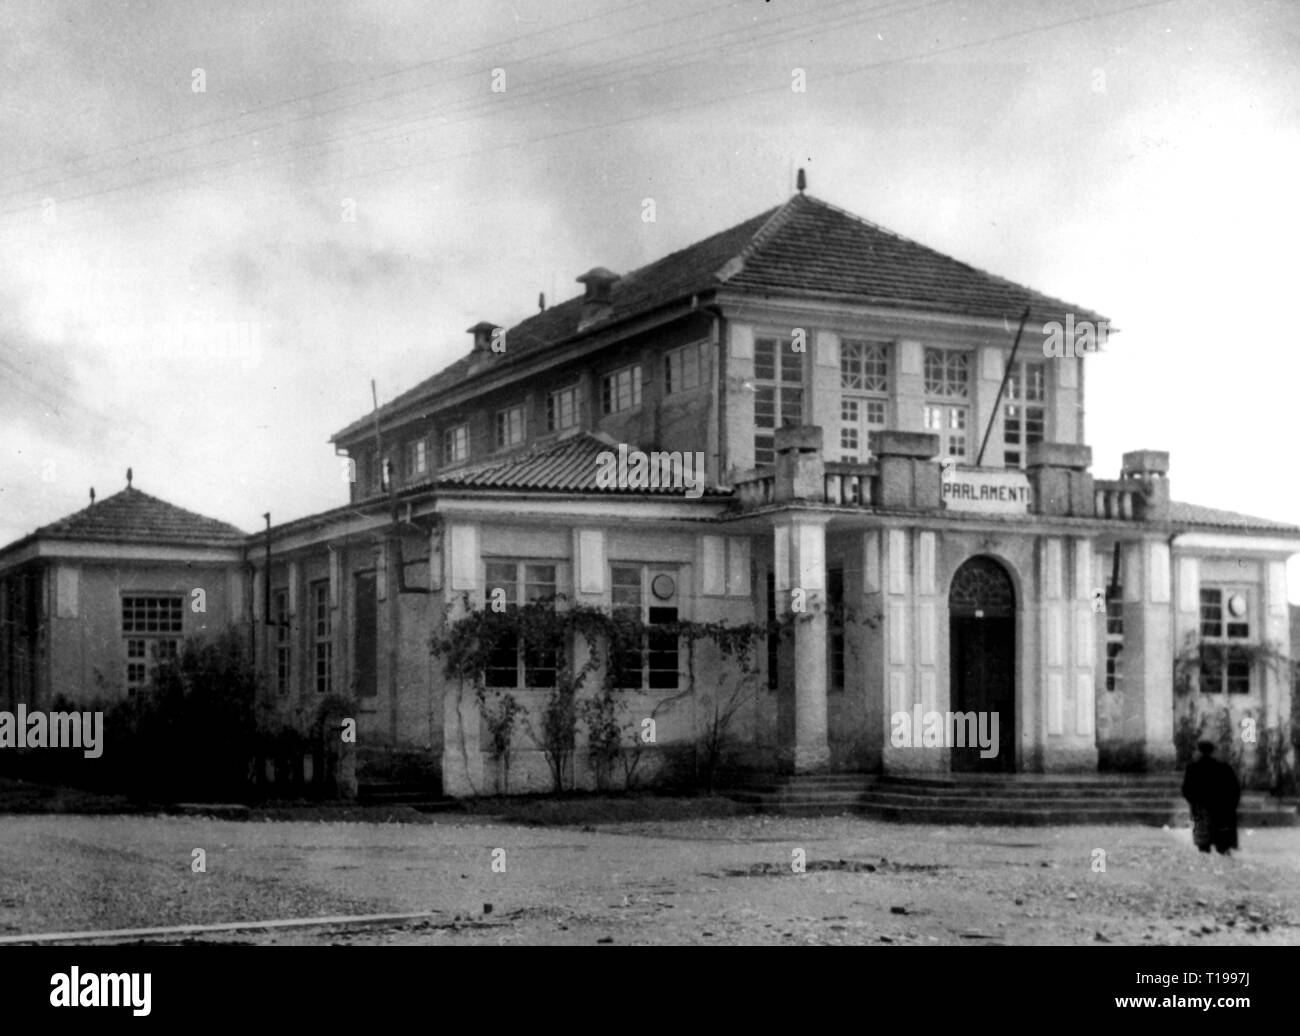 geography / travel historic, Albania, cities and communities, Tirana, building, parliament, exterior view, 1930s, Additional-Rights-Clearance-Info-Not-Available - Stock Image